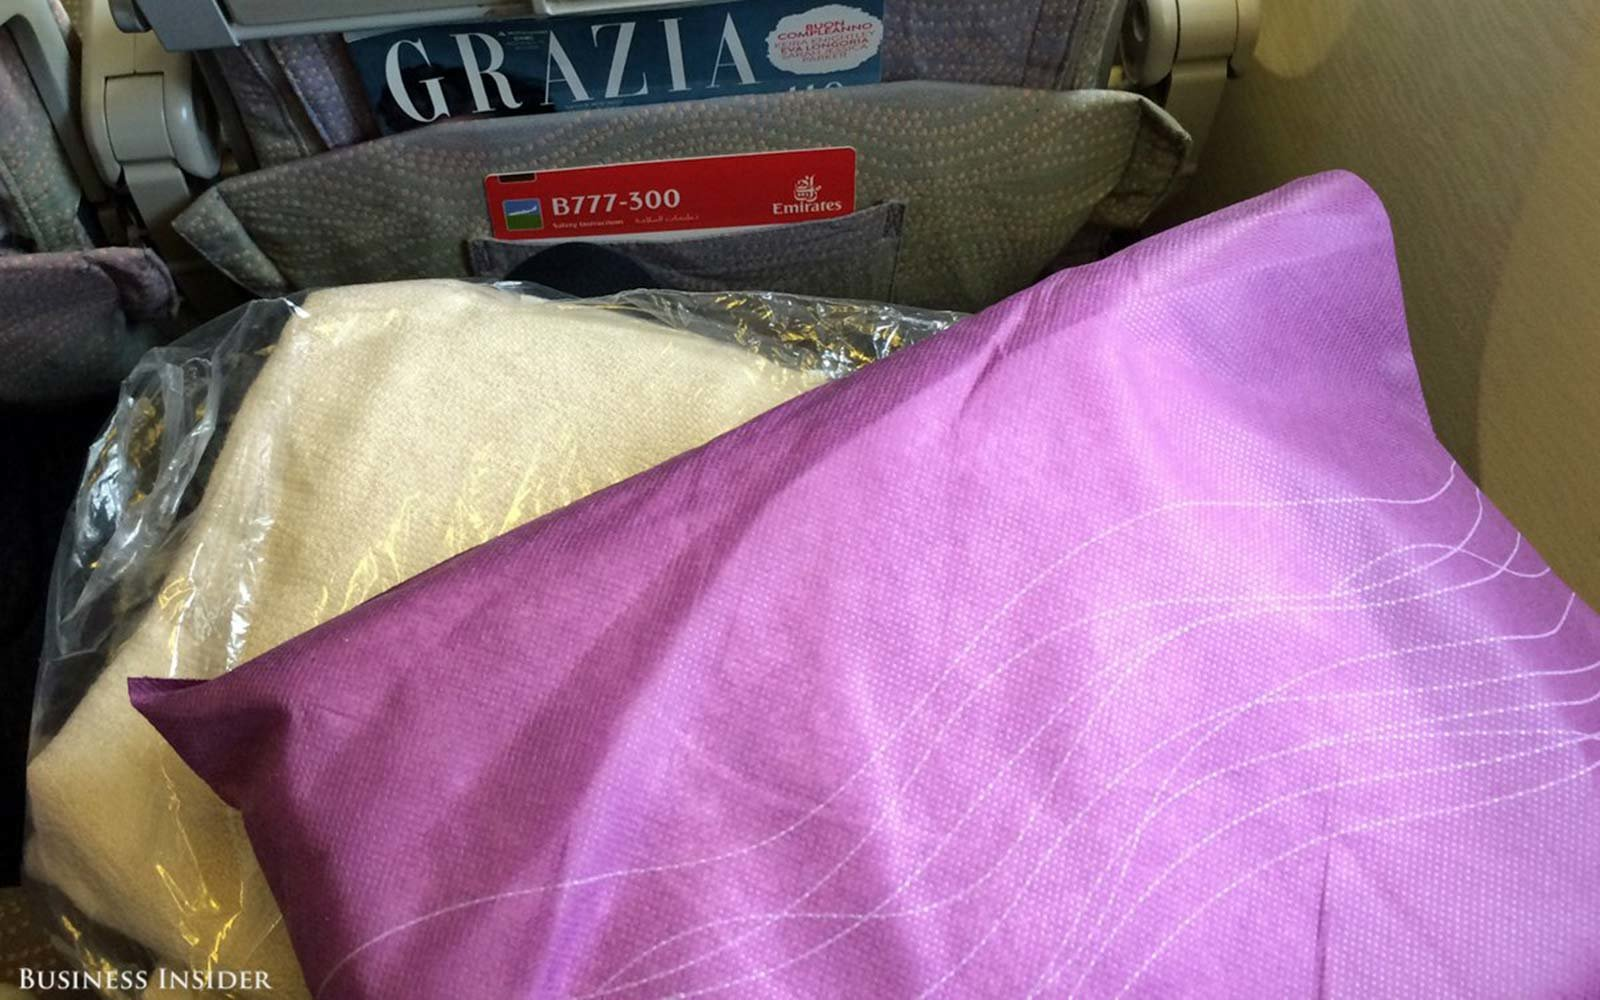 After taking a flight on Emirates, I never want to fly a domestic airline again